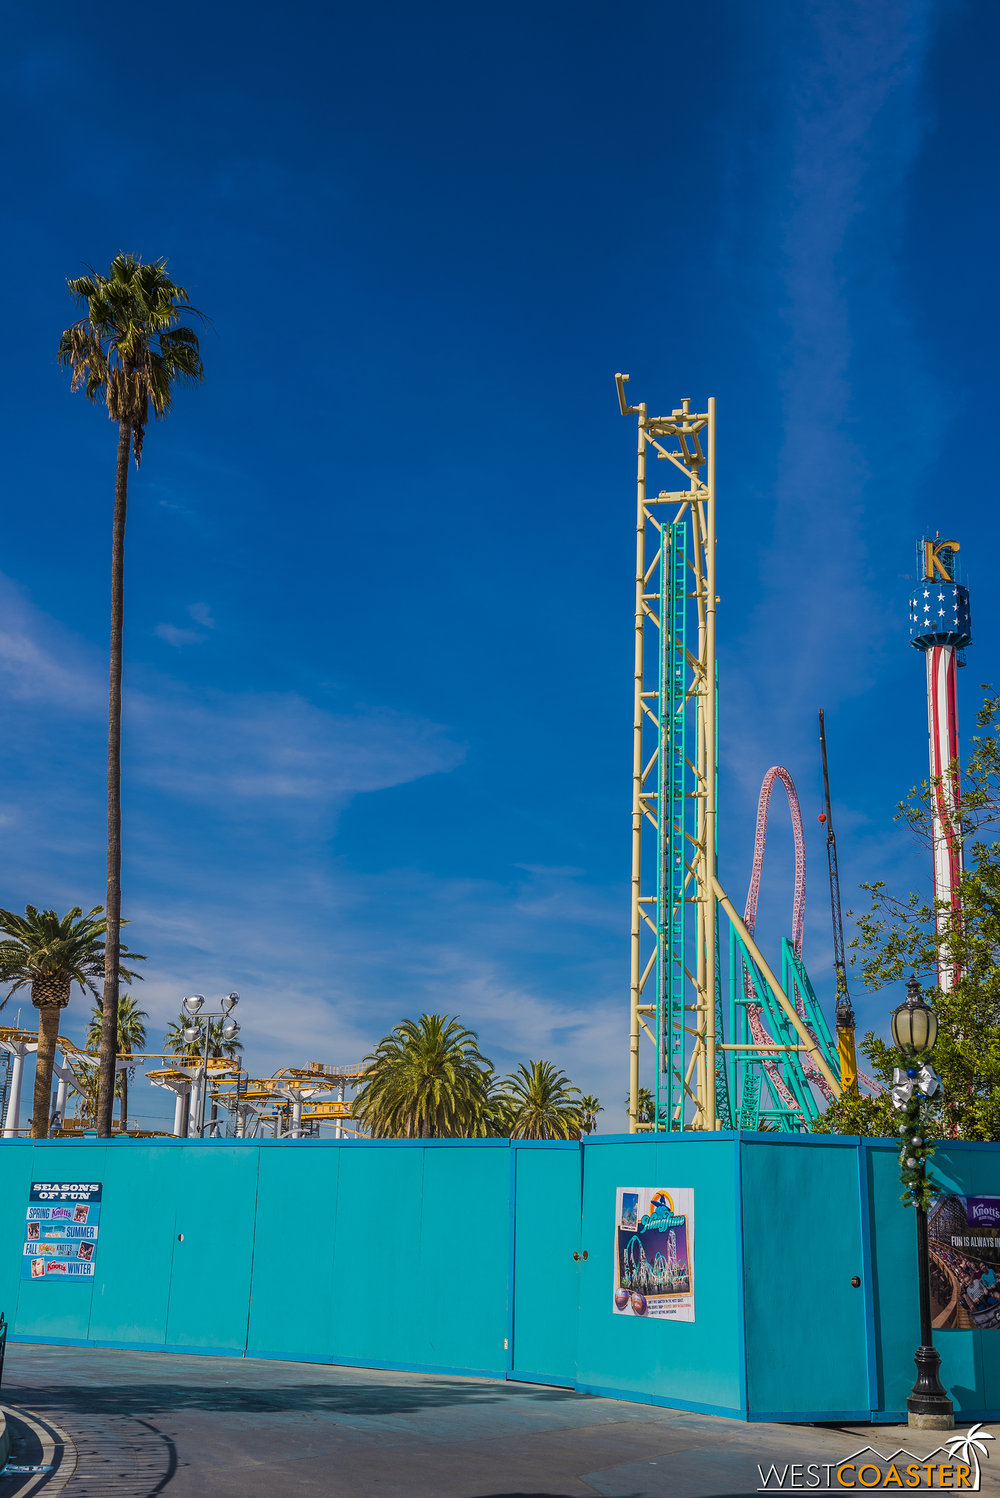 Dayam, there's a pretty tall erection coming out of the Boardwalk at Knott's!